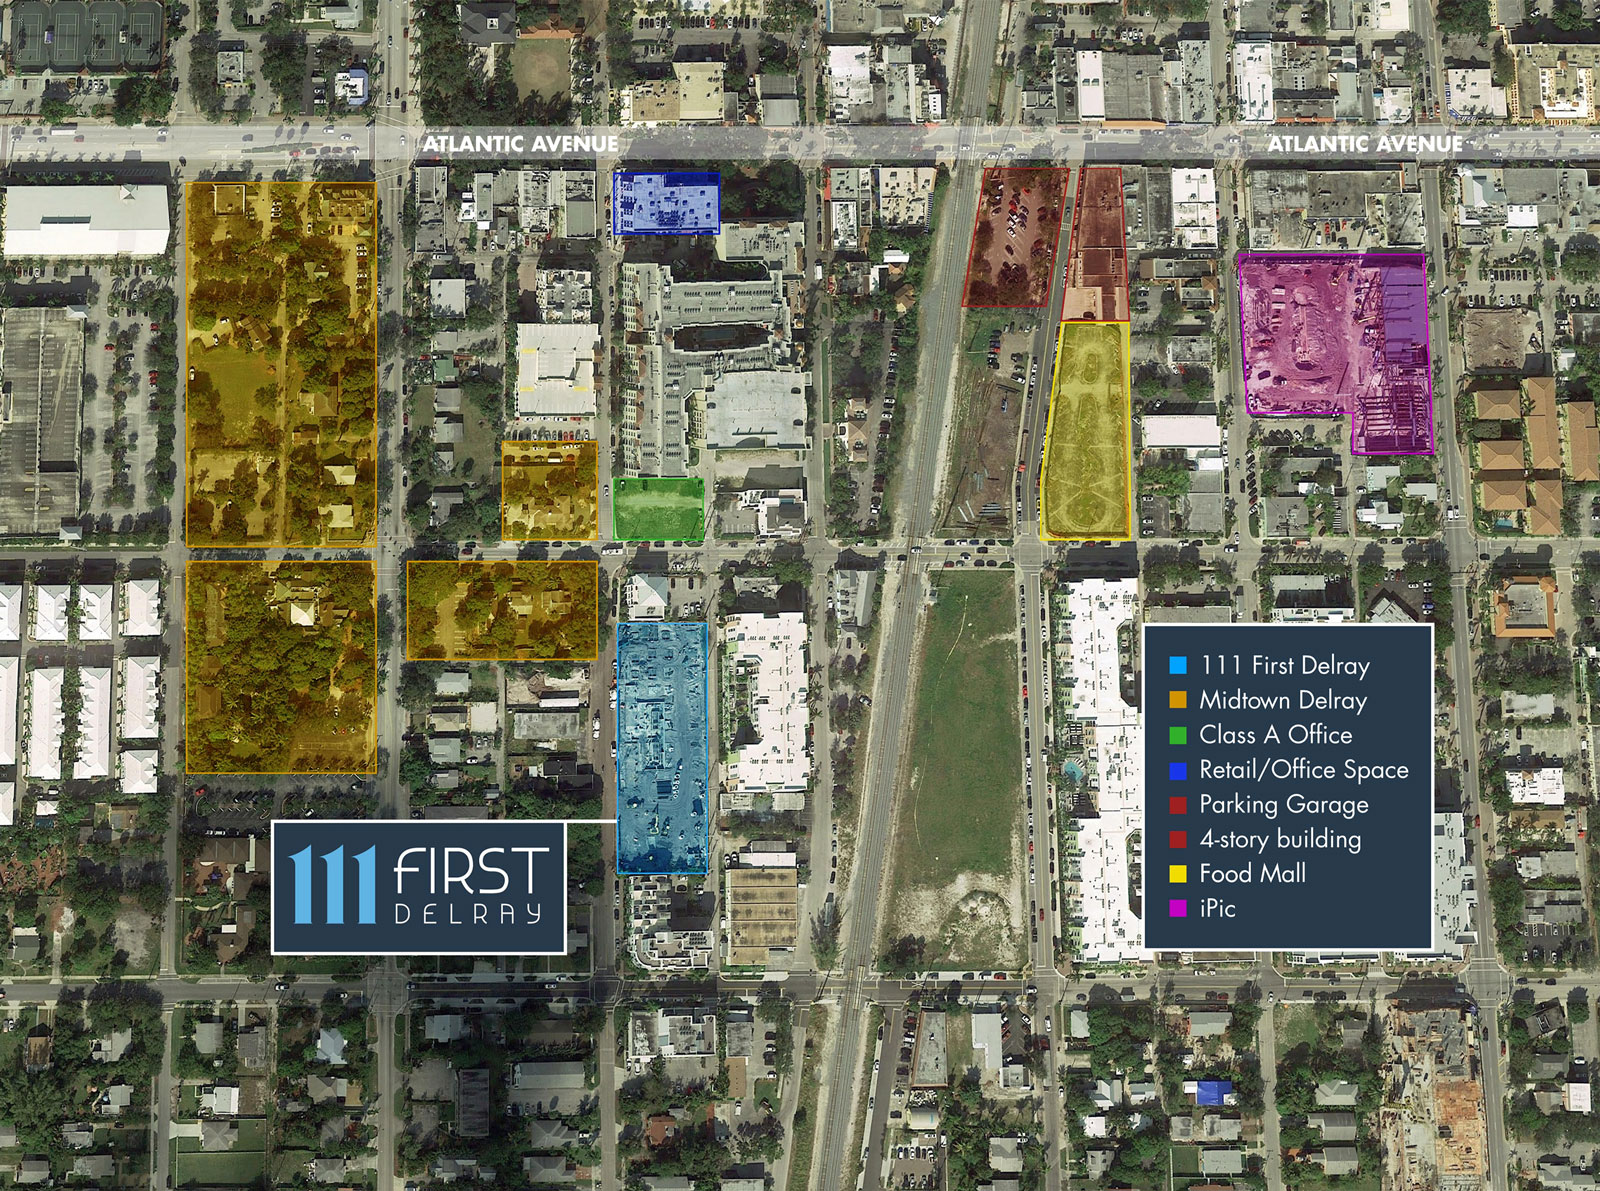 111 First Delray Condo SofA District Map